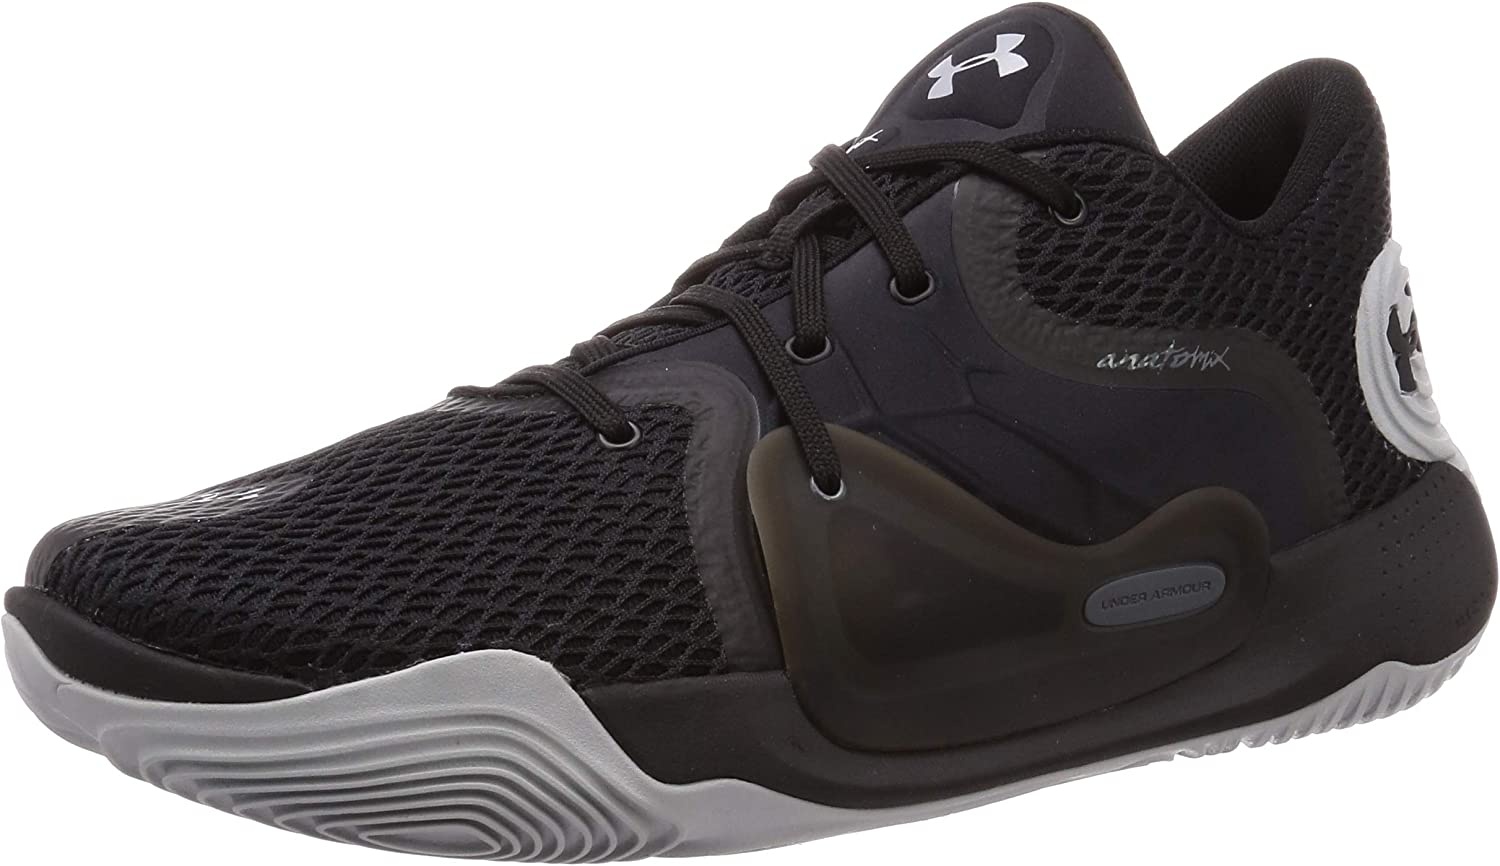 Under Armour Mens Spawn 2 Basketball Shoe